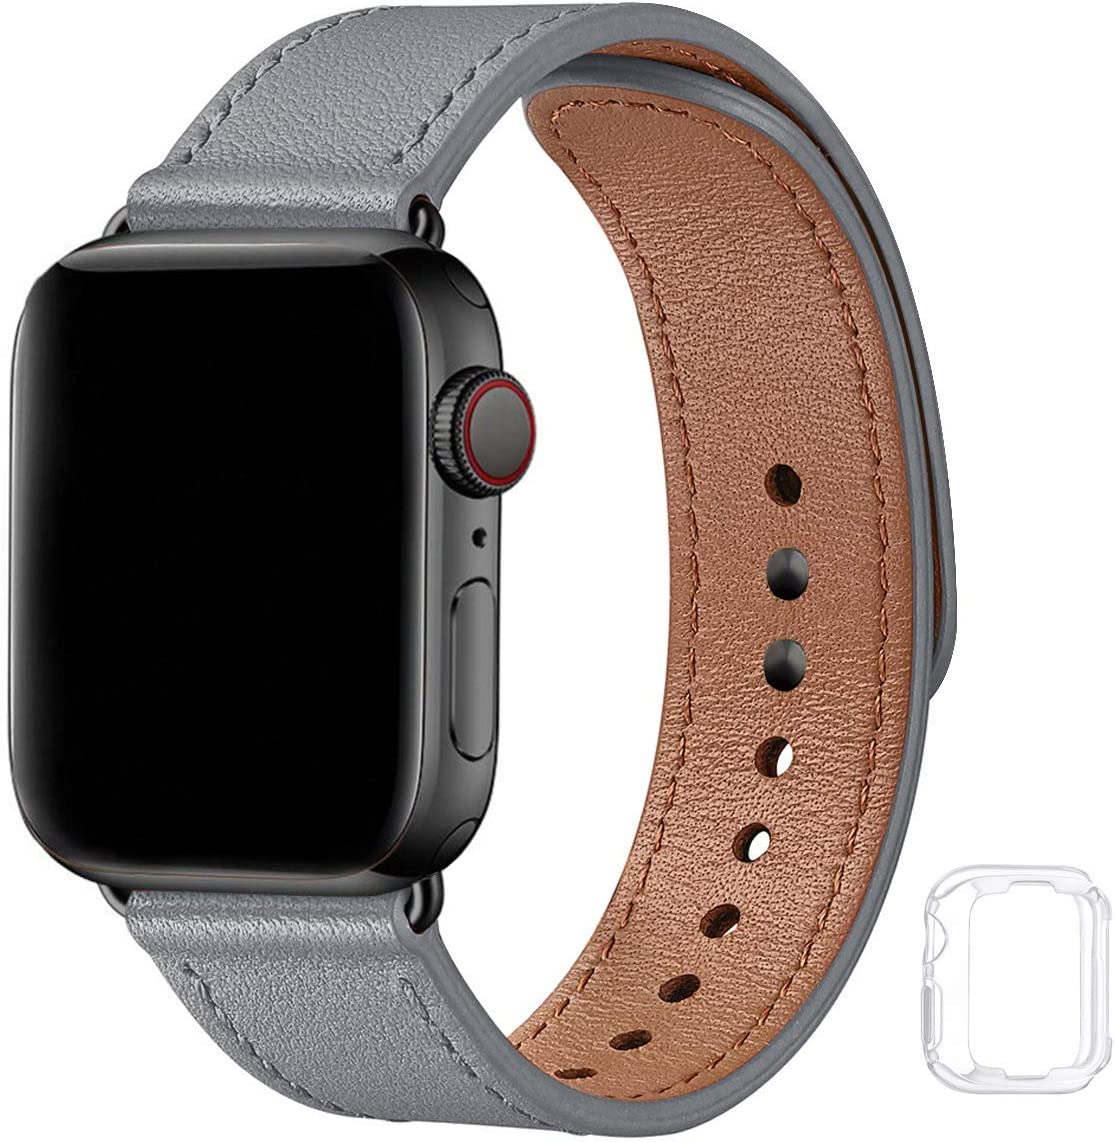 Soft Leather Bands Compatible with Apple Watch Band 38mm 40mm 42mm 44mm, Special Watch Band Replacement Strap for Women Men for iWatch SE Series 6 5 4 3 2 1 (Gray with Black, 42MM/44MM)